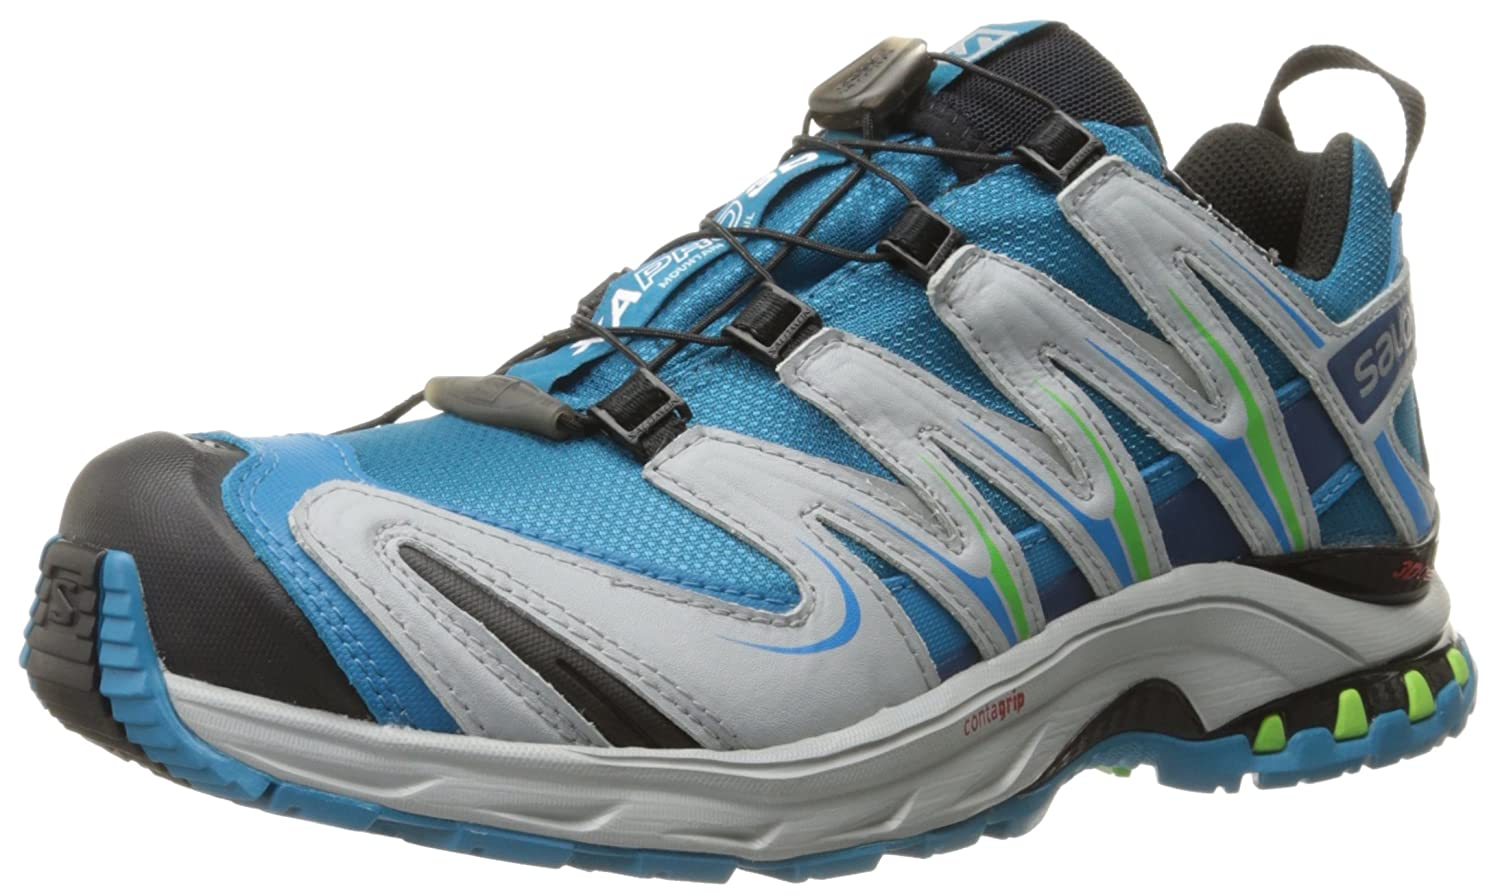 Salomon Women's XA Pro 3D CS Waterproof W Trail Running Shoe B00ZLN75C2 5 B(M) US|Fog Blue/Light Onix/Igloo Blue